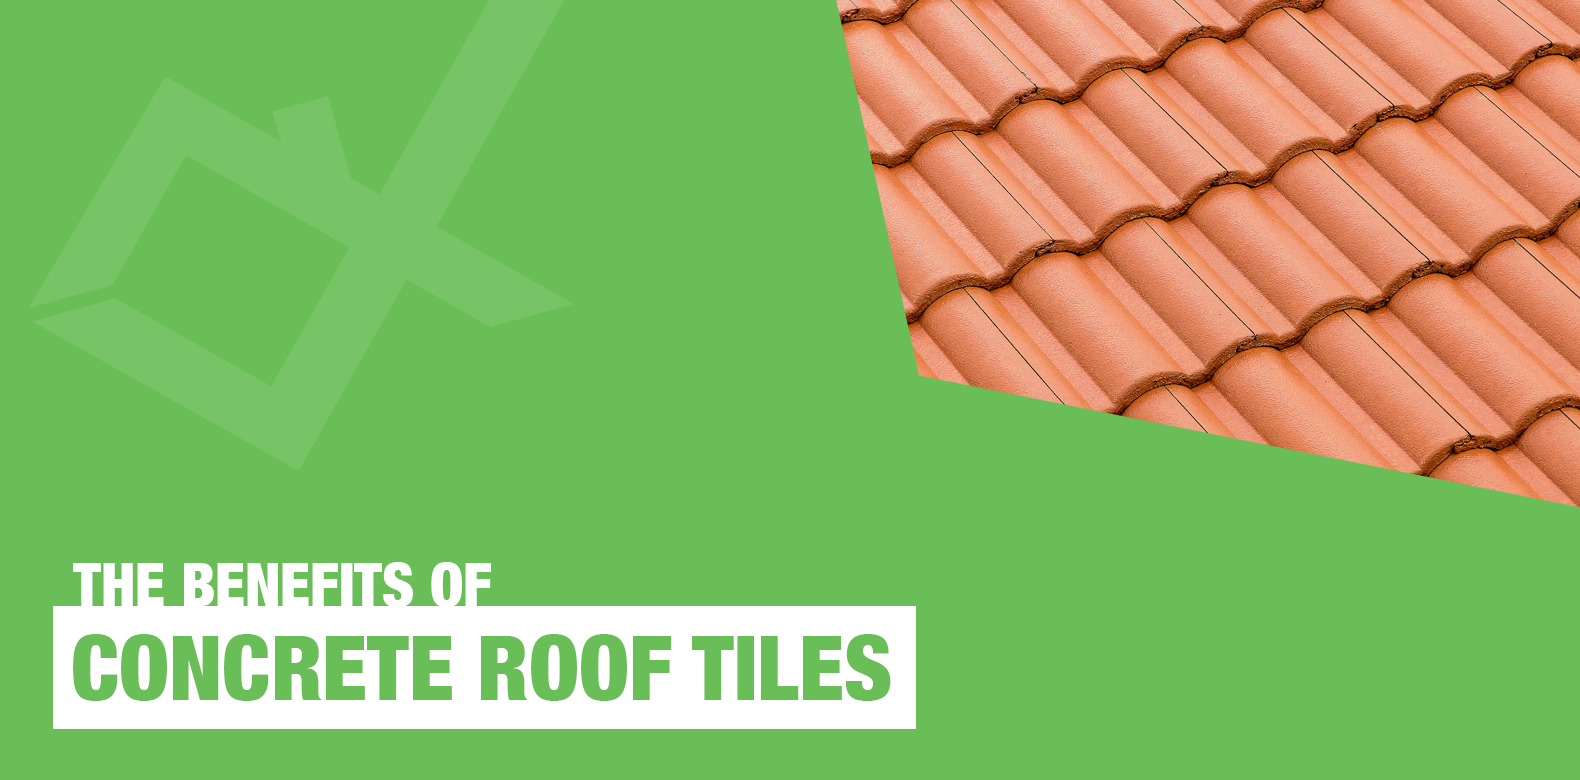 The Benefits of Concrete Roof Tiles